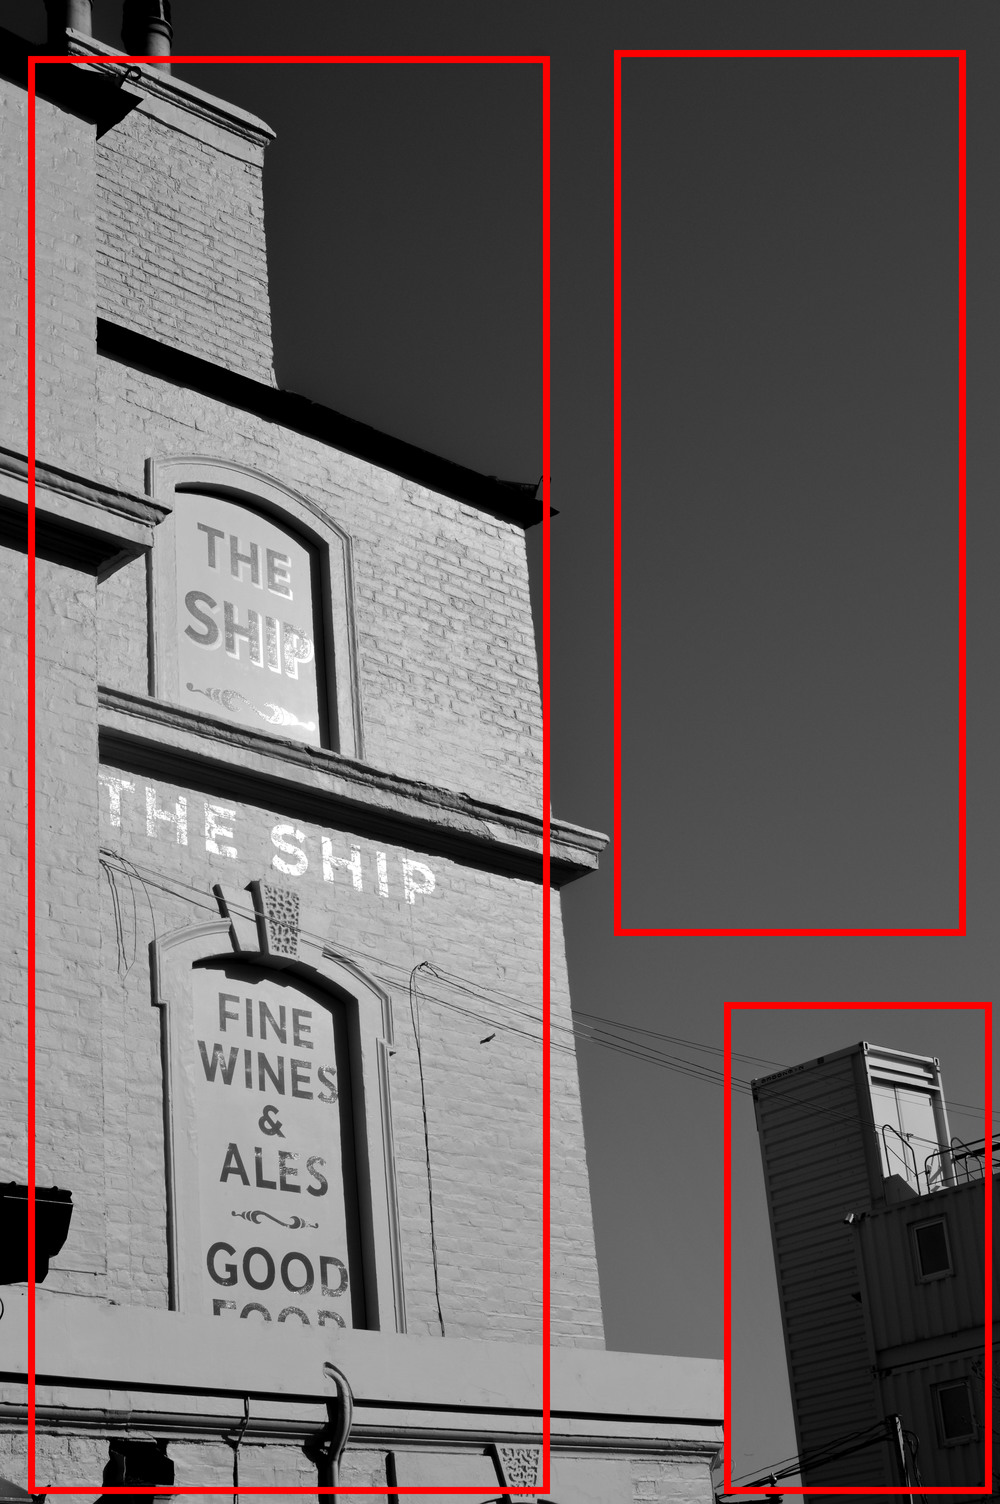 Picture 3. This image of The Ship pub in  Wandsworth is slightly more complicated. The image appears completely imbalanced at first, with the pub itself taking up the bulk of the left hand side of the frame. However, the cement works in the lower right of the image and the block of clear sky help balance the picture.